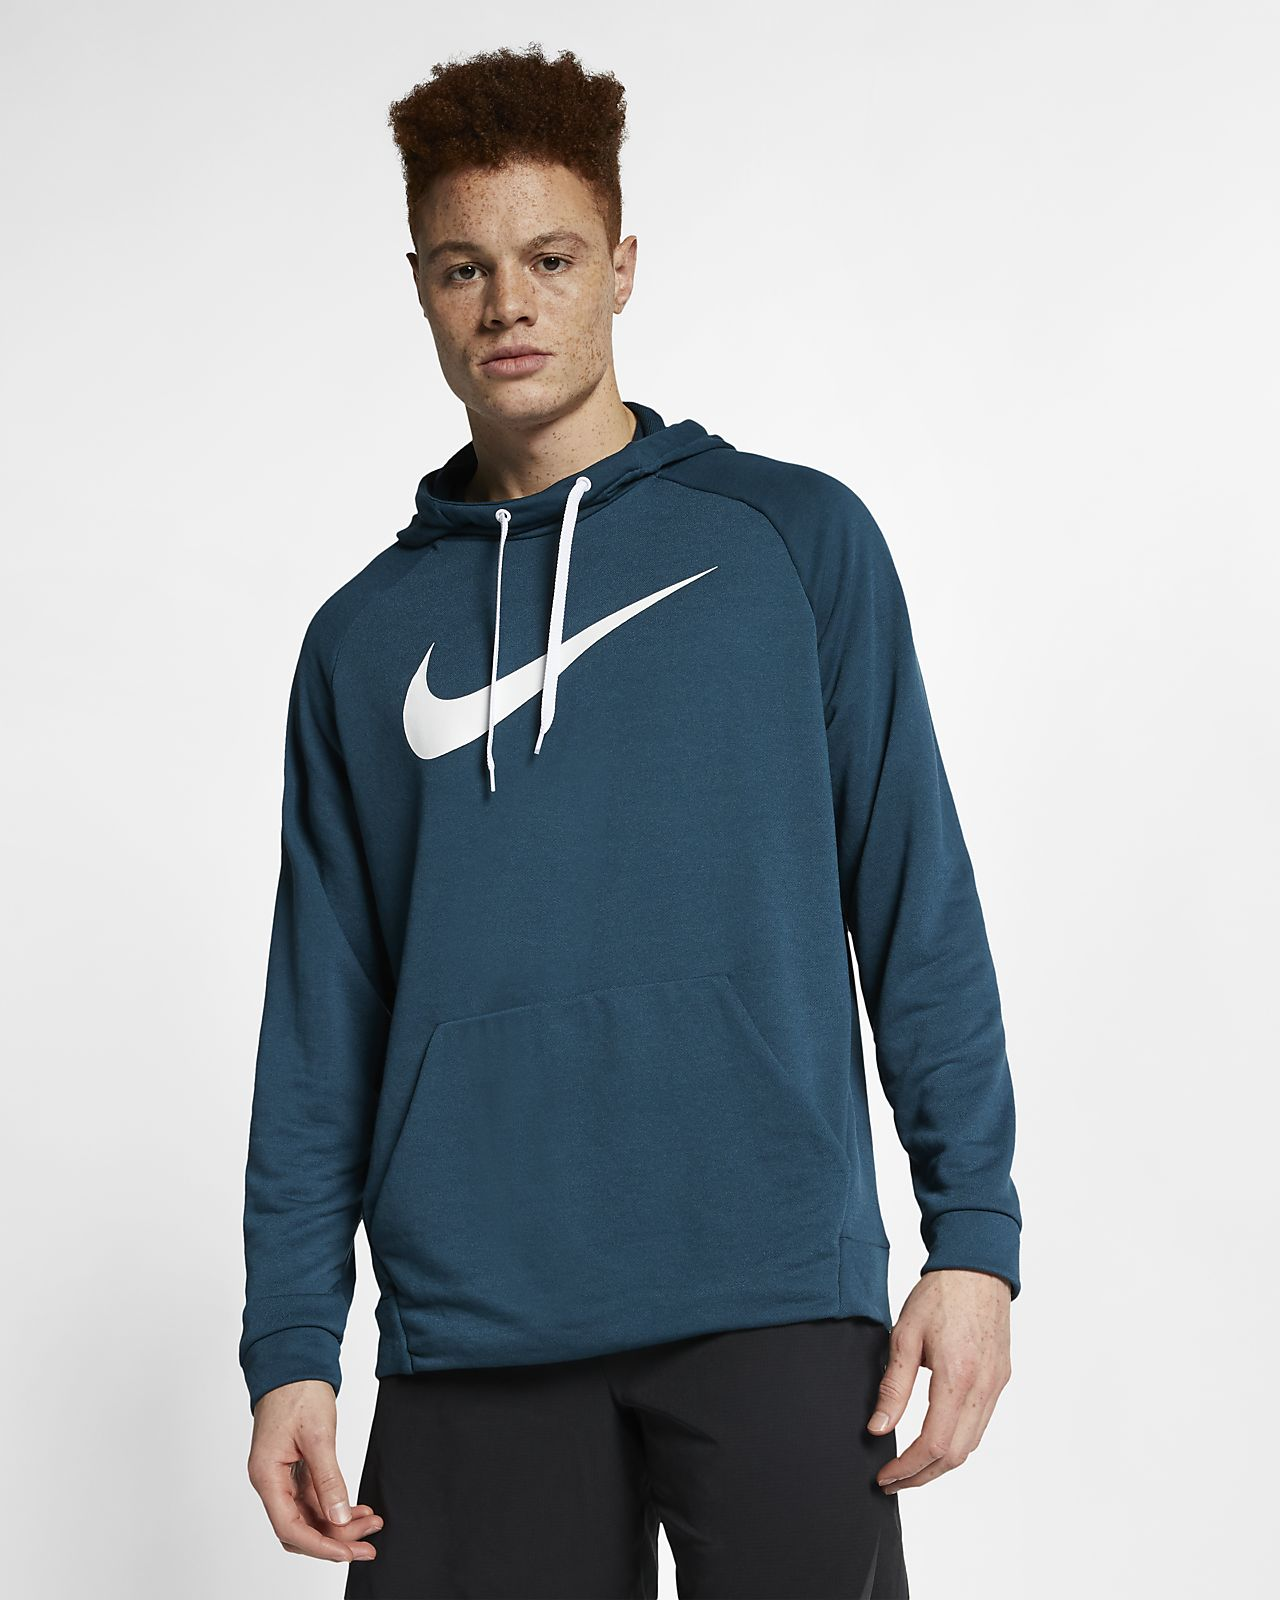 Nike Dri-FIT Trainings-Hoodie für Herren